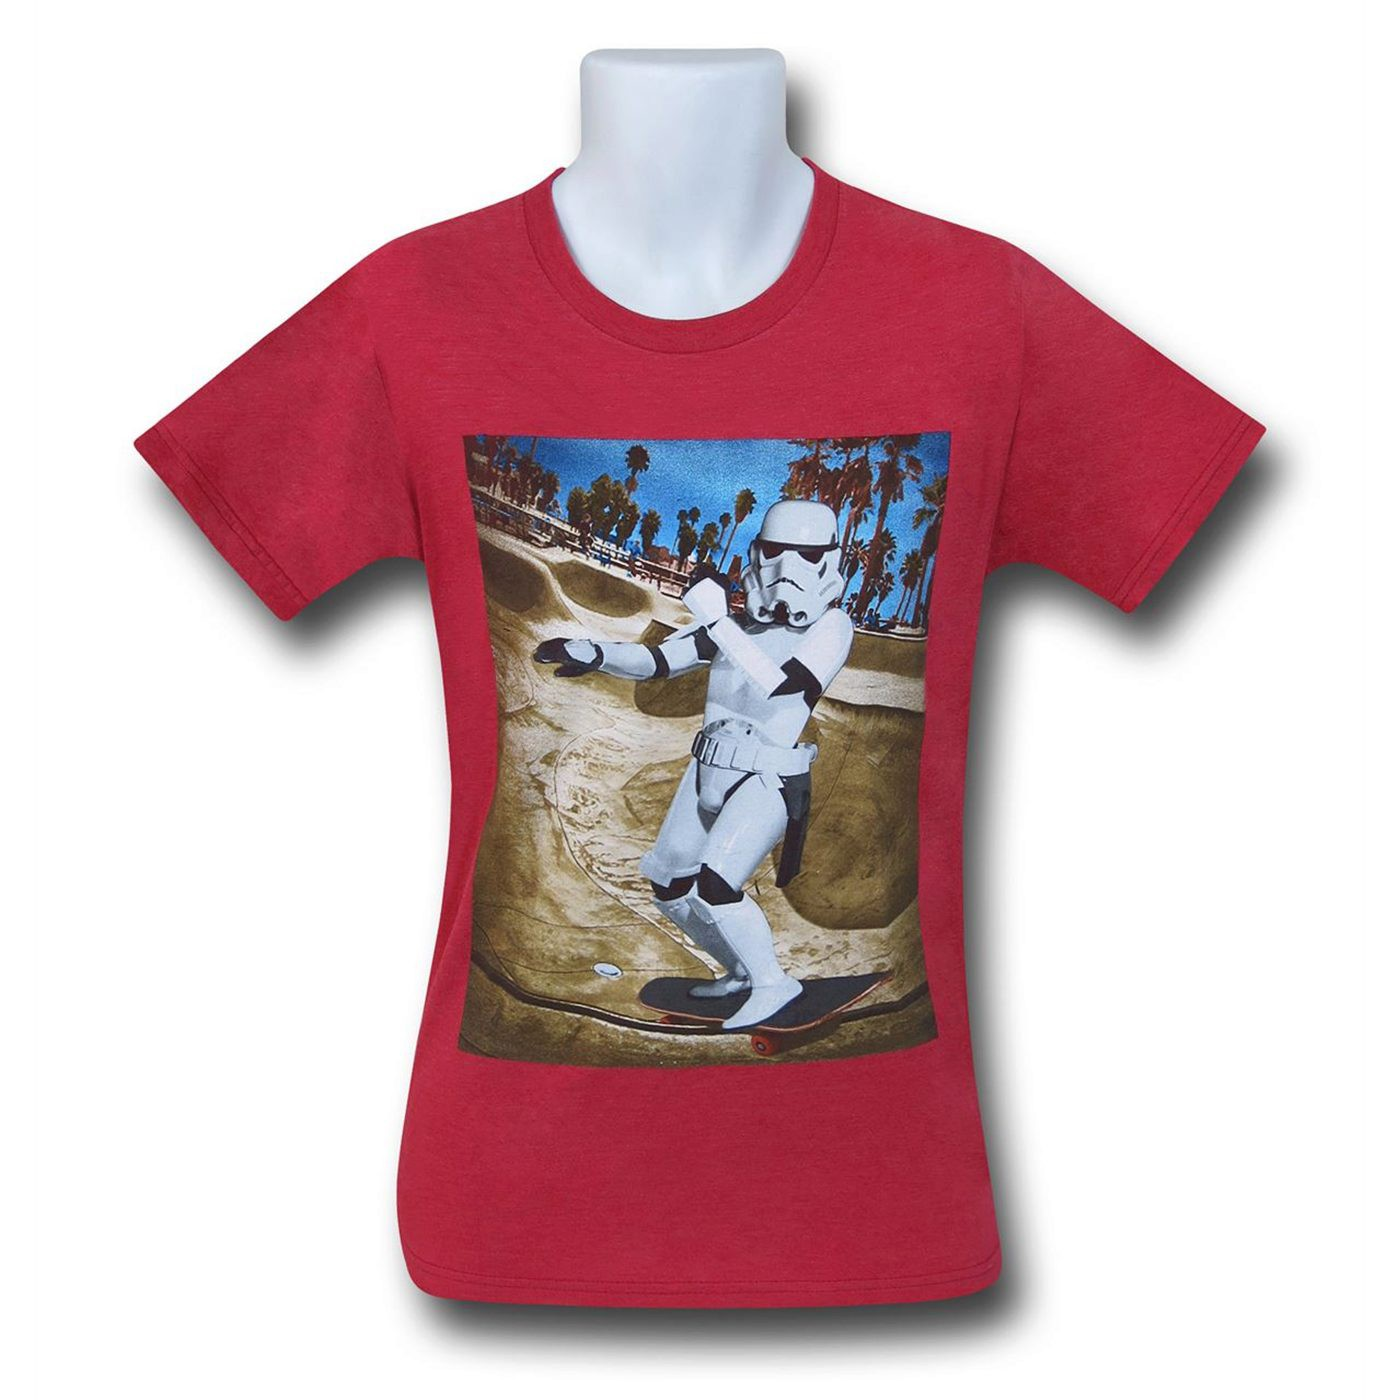 Star Wars Trooper Pool Skate Kids T-Shirt